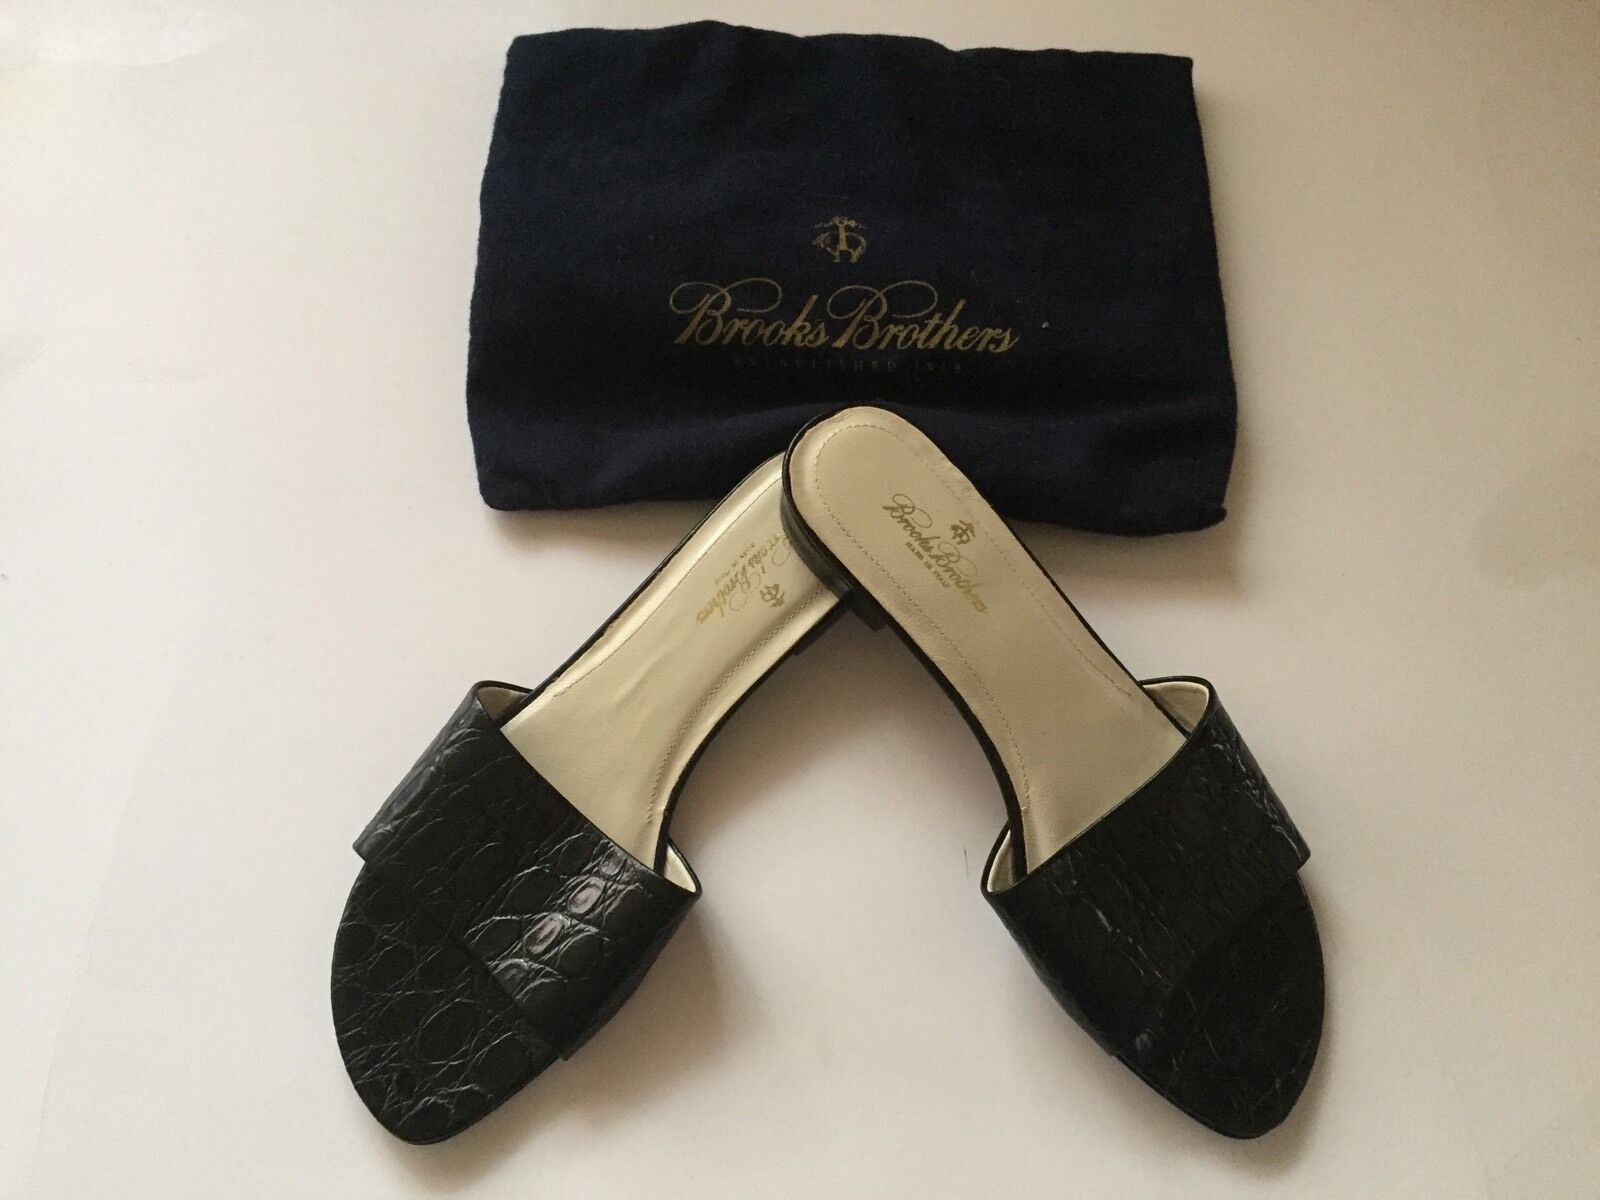 BROOKS BredHERS NEW WOMAN LEATHER BLACK MULES SHOES Size 7M MADE IN ITALY